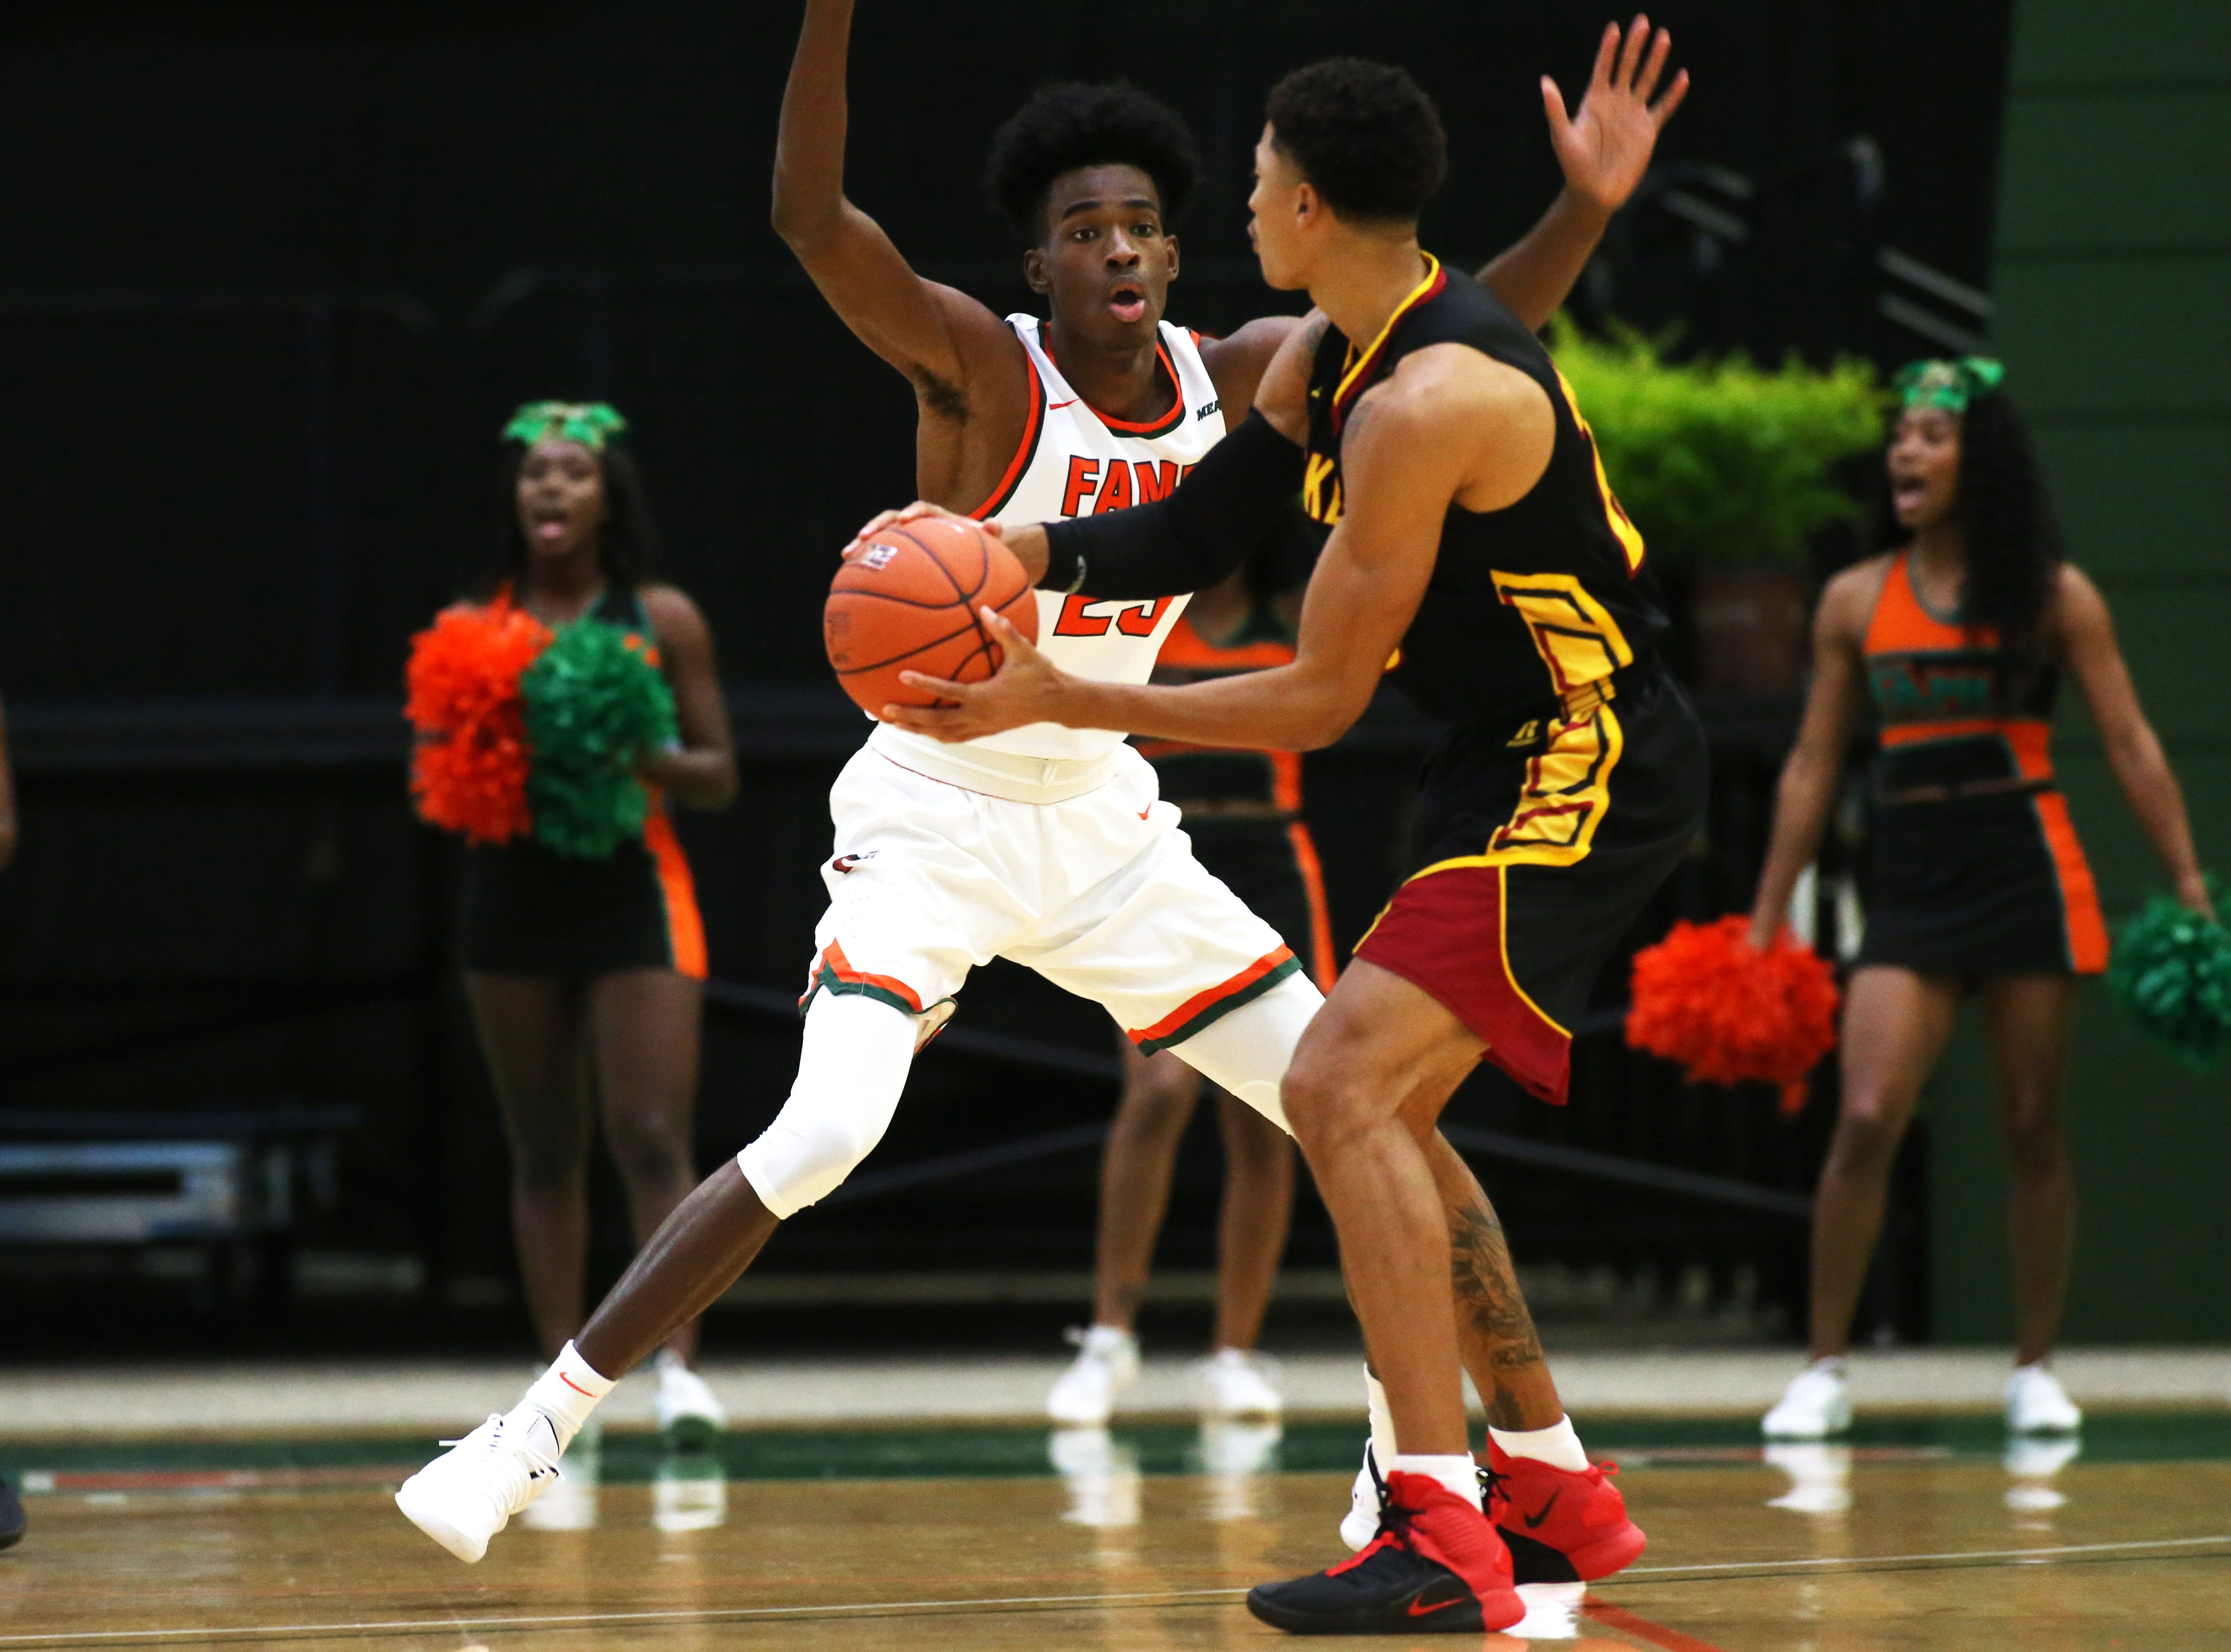 Florida A&M Rattlers forward Bryce Moragne (23) guards a Tuskegee player as the FAMU Rattlers take on the Tuskegee Golden Tigers in their first home game of the season in the Lawson Center, Saturday, Nov. 10, 2018.